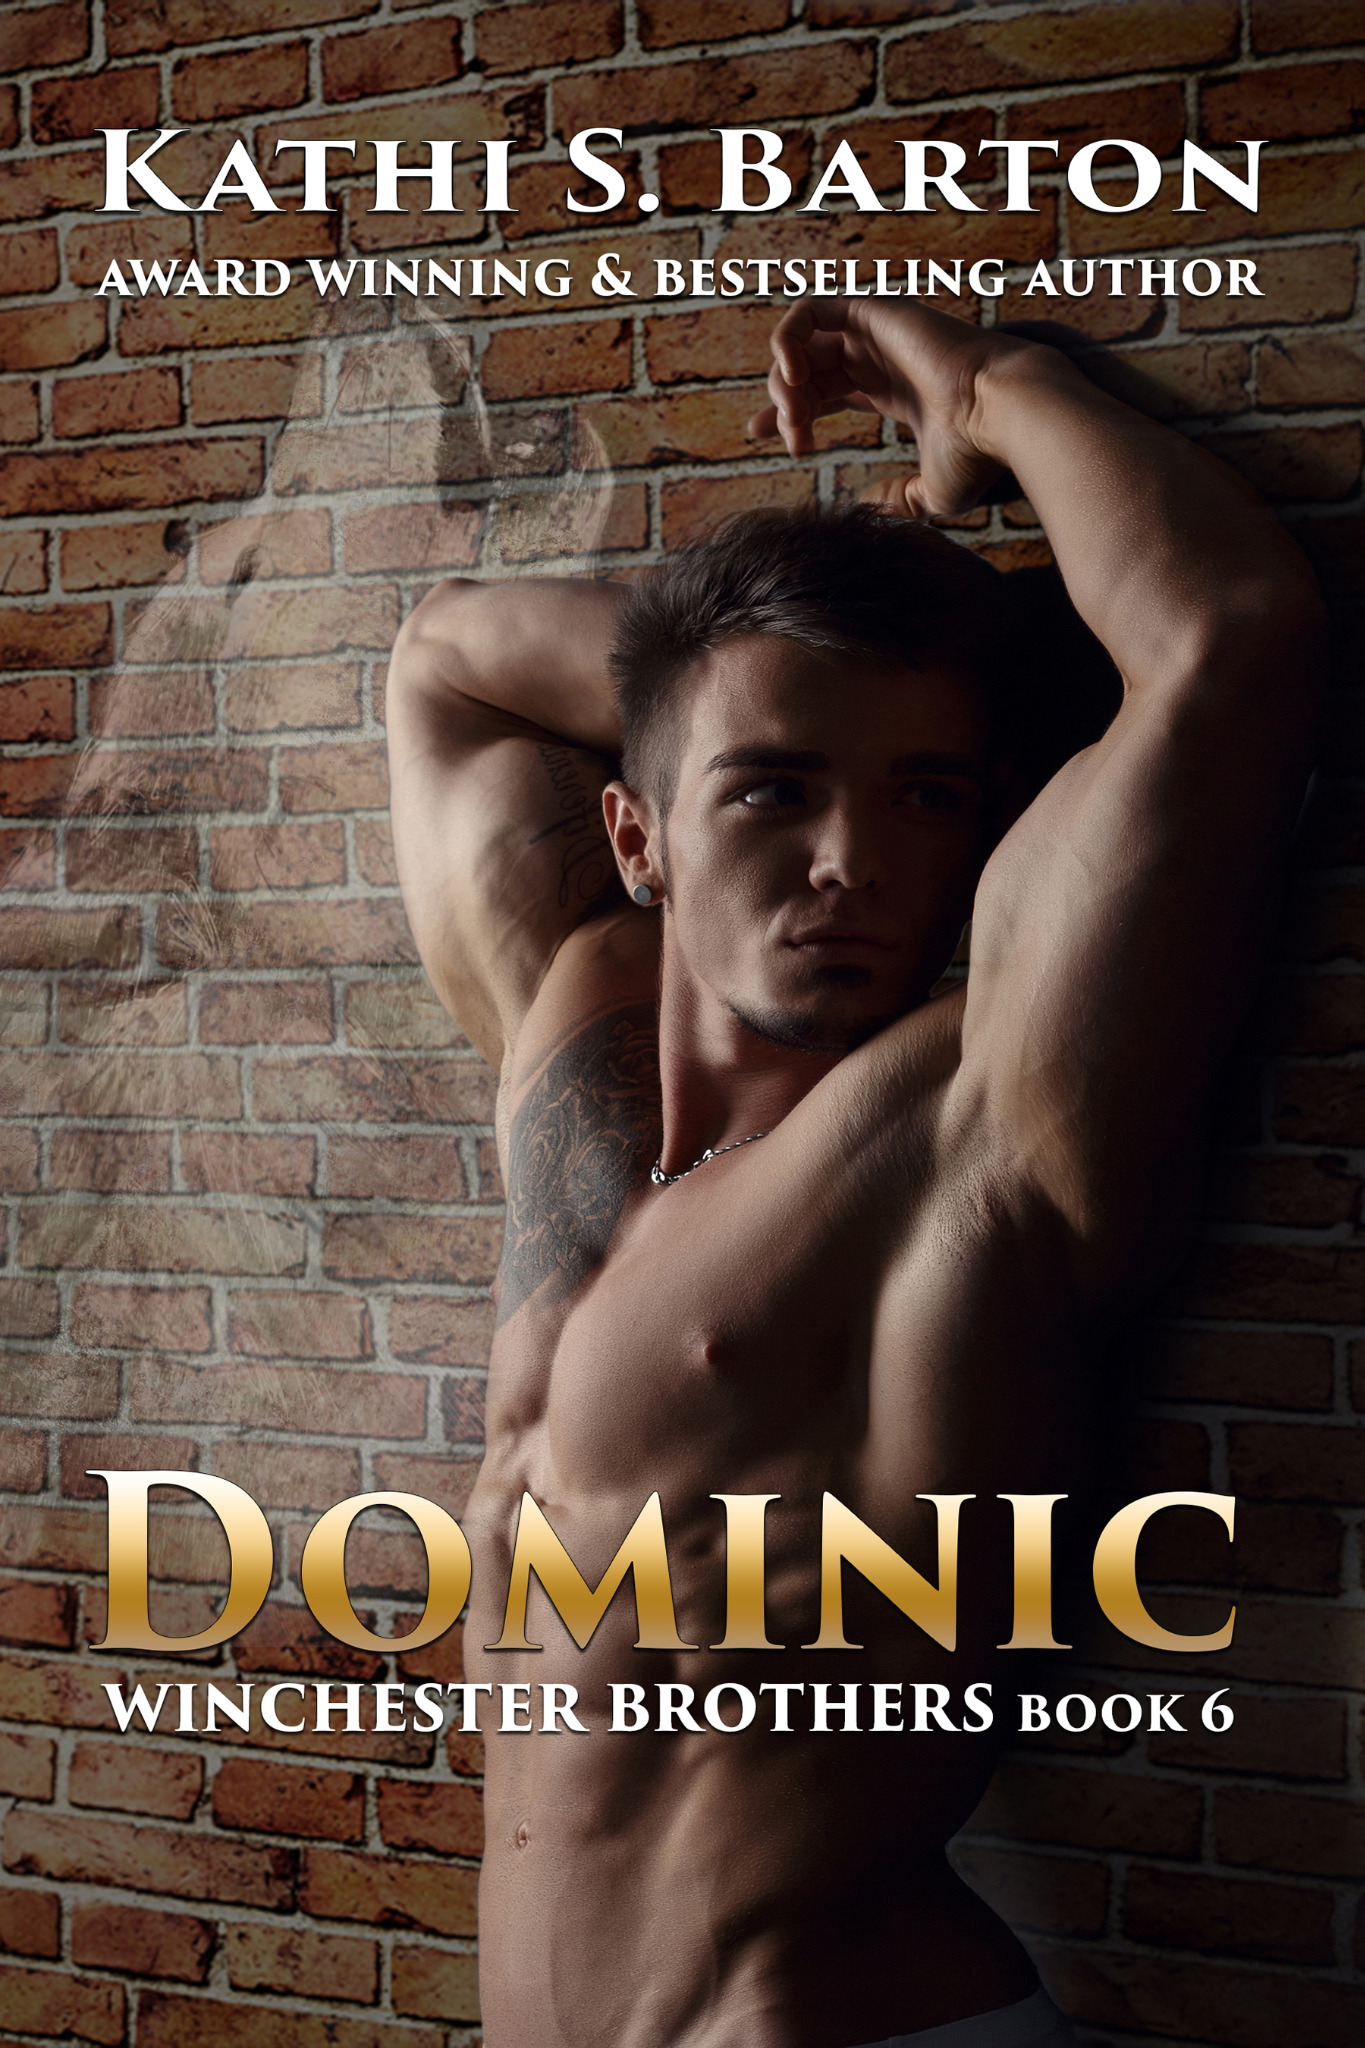 Dominic - Winchester Brothers Book 6